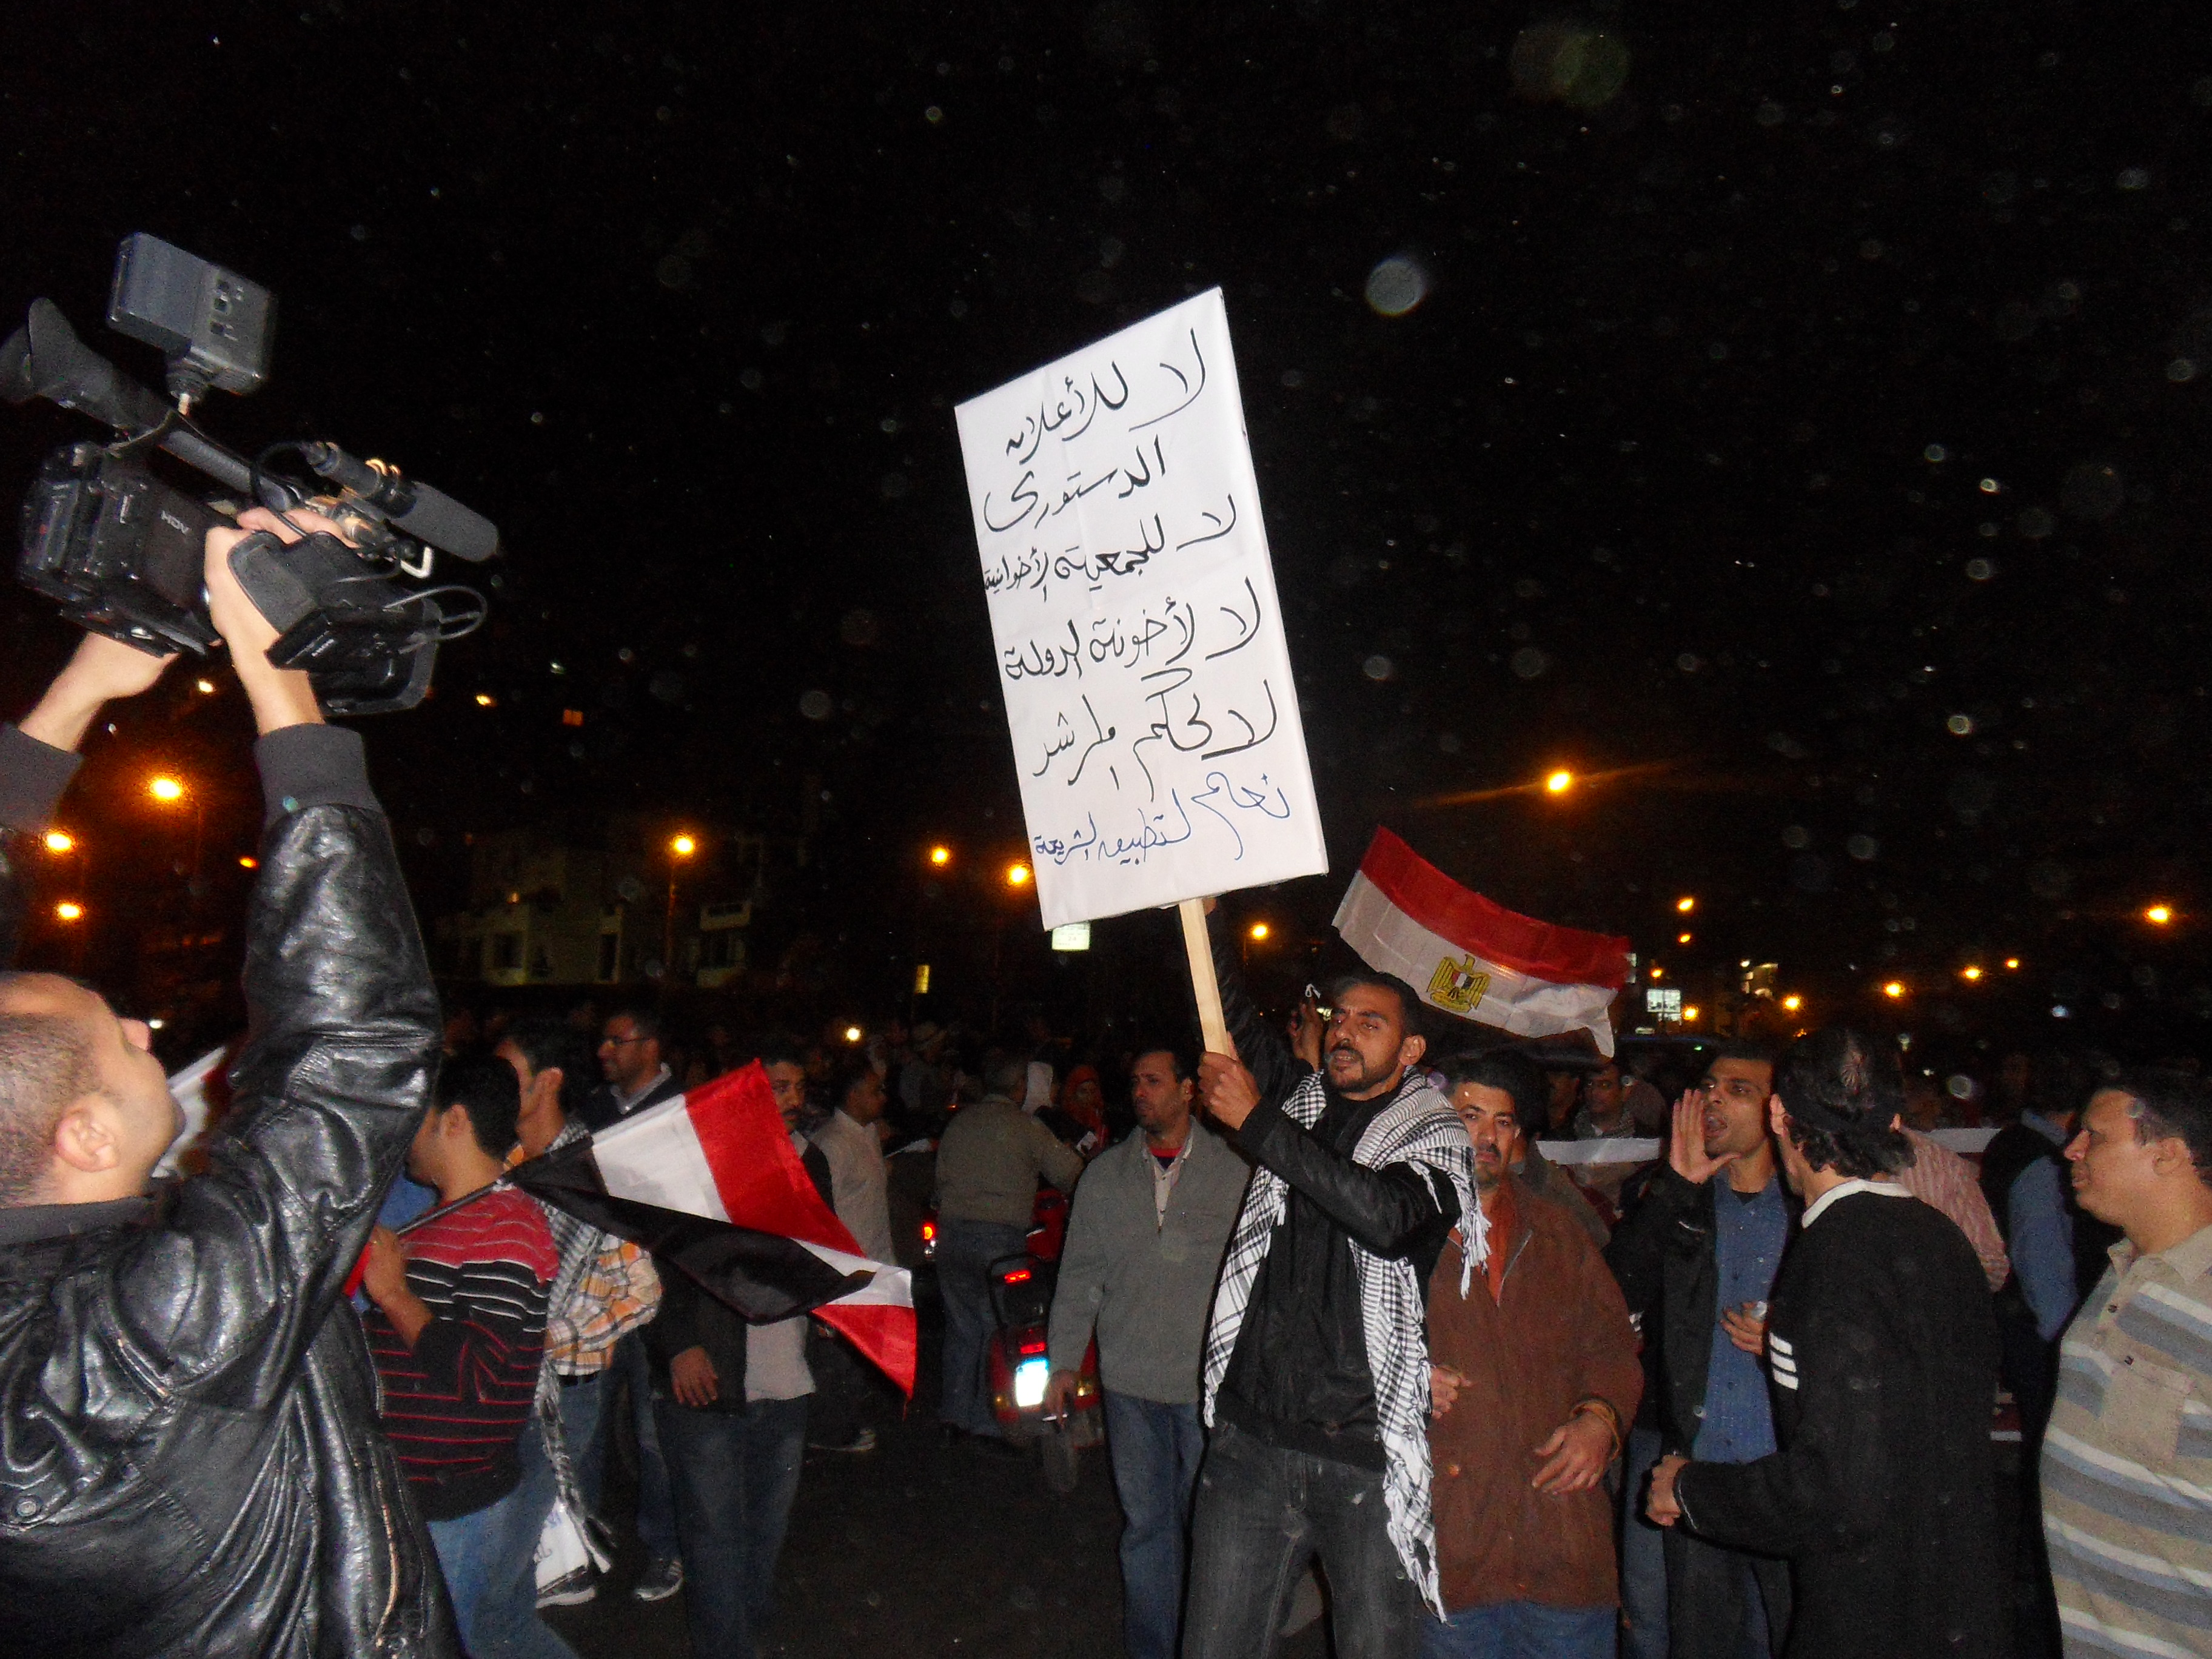 A new group of protesters had arrived. The existing protesters broke out in cheers and clapped upon their arrival.